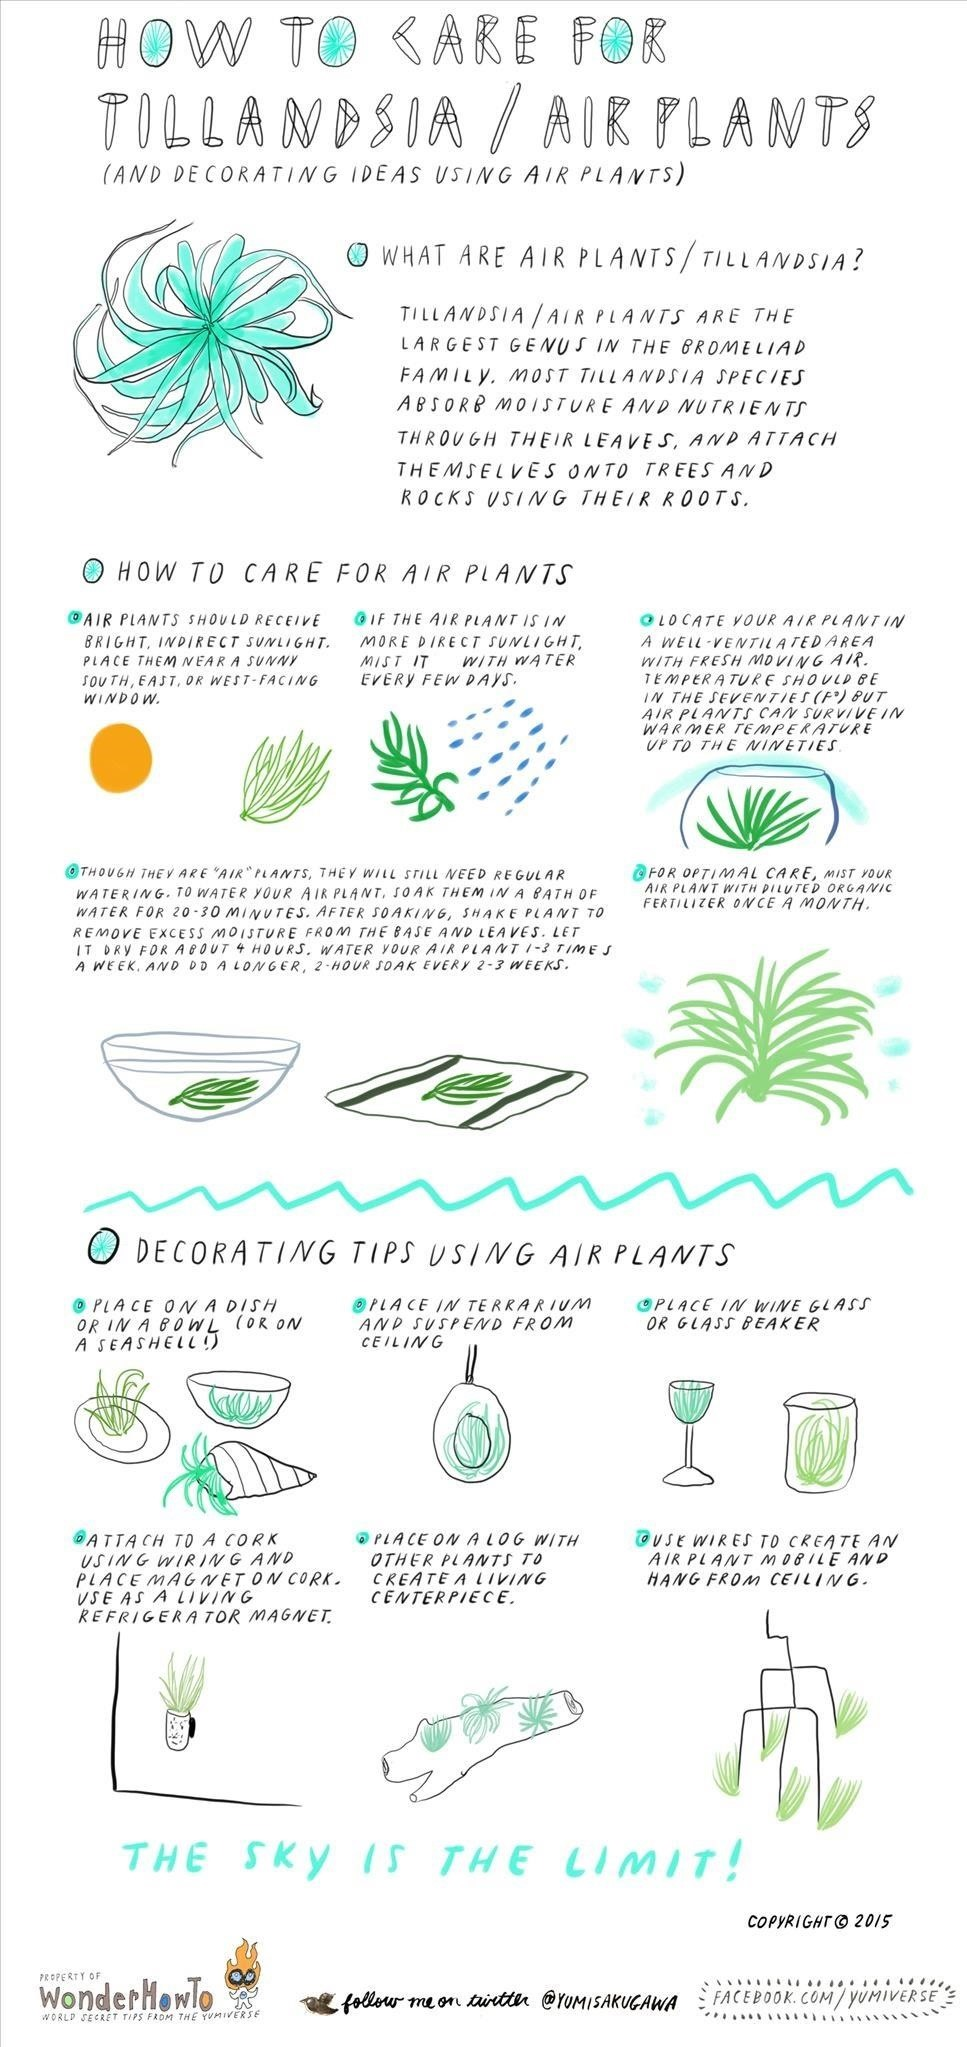 How To Care For Air Plants (& Decorate With Them) « The. Great Kitchen Gadgets. Tile Kitchen Backsplash Ideas. Vintage Kitchen Cupboards. Adhesive Kitchen Backsplash. Kitchens Sinks. Enesco Kitchen Fairies. Hell Kitchen Game. White Pedestal Kitchen Table